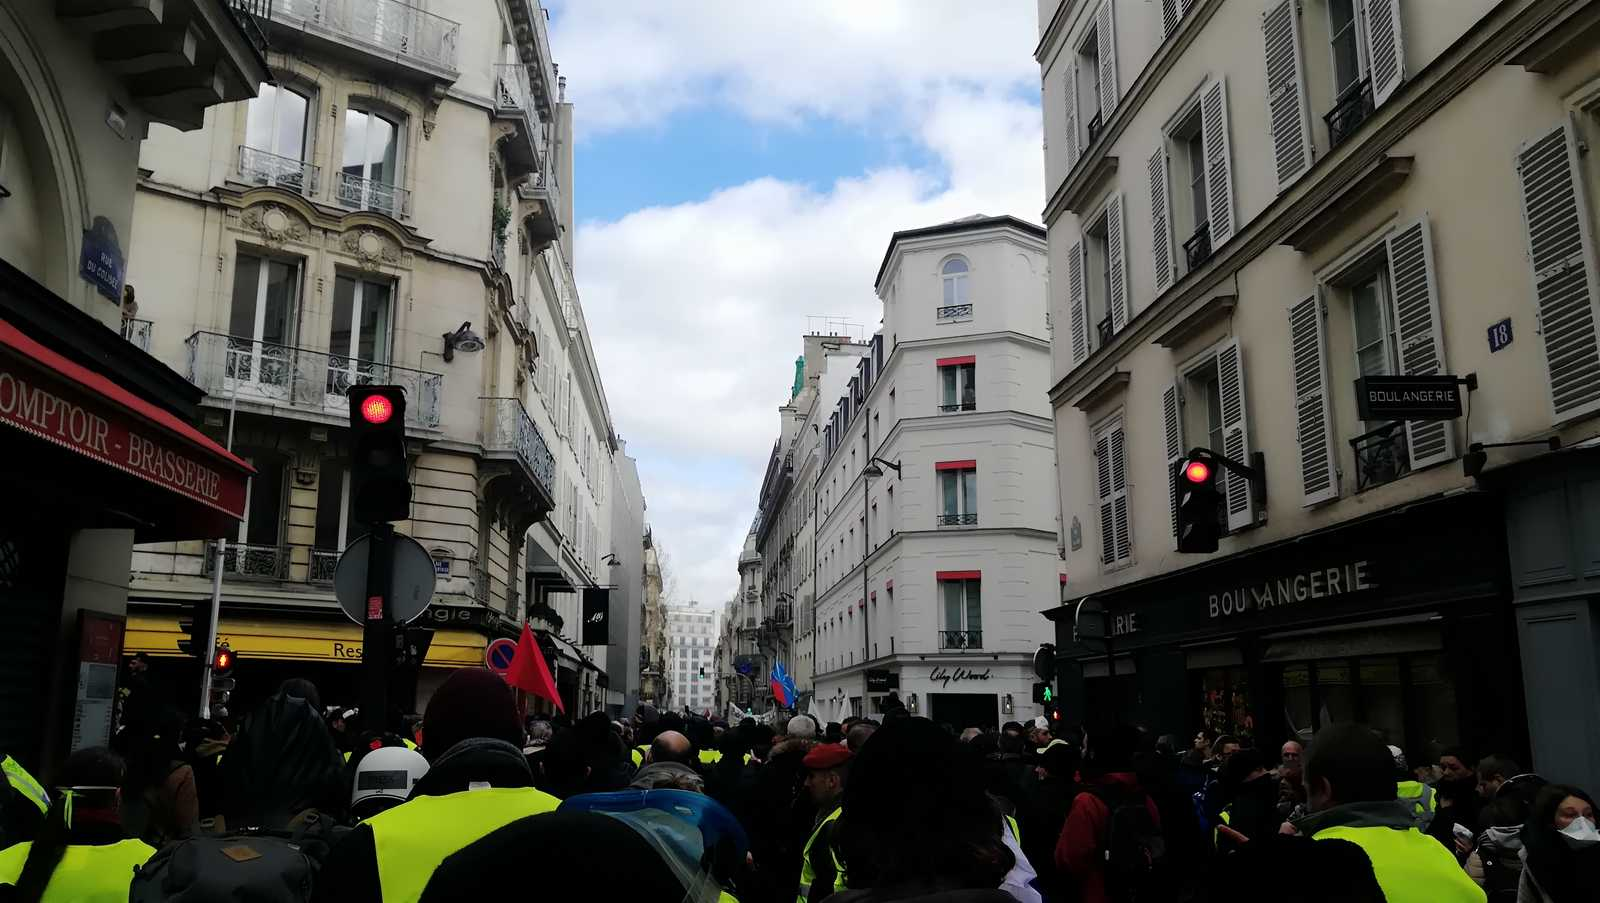 Protesters of the Gilets Jaunes movement are walking in a street of Paris.